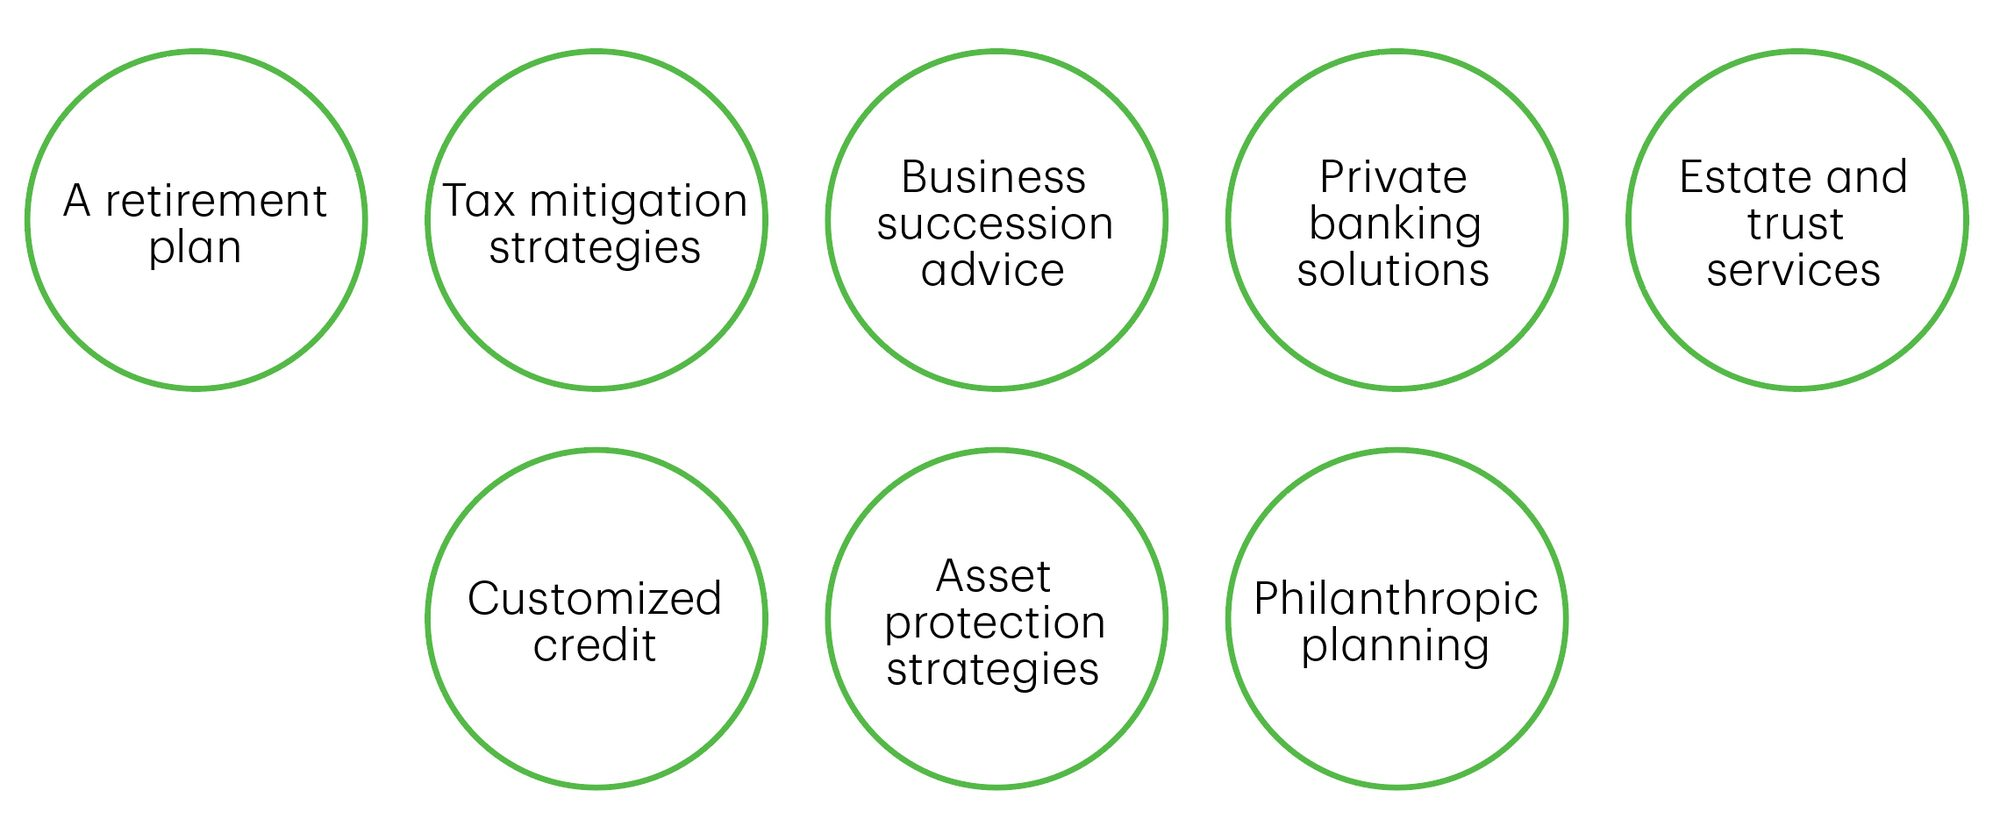 TD Specialists Services Graphic.jpg